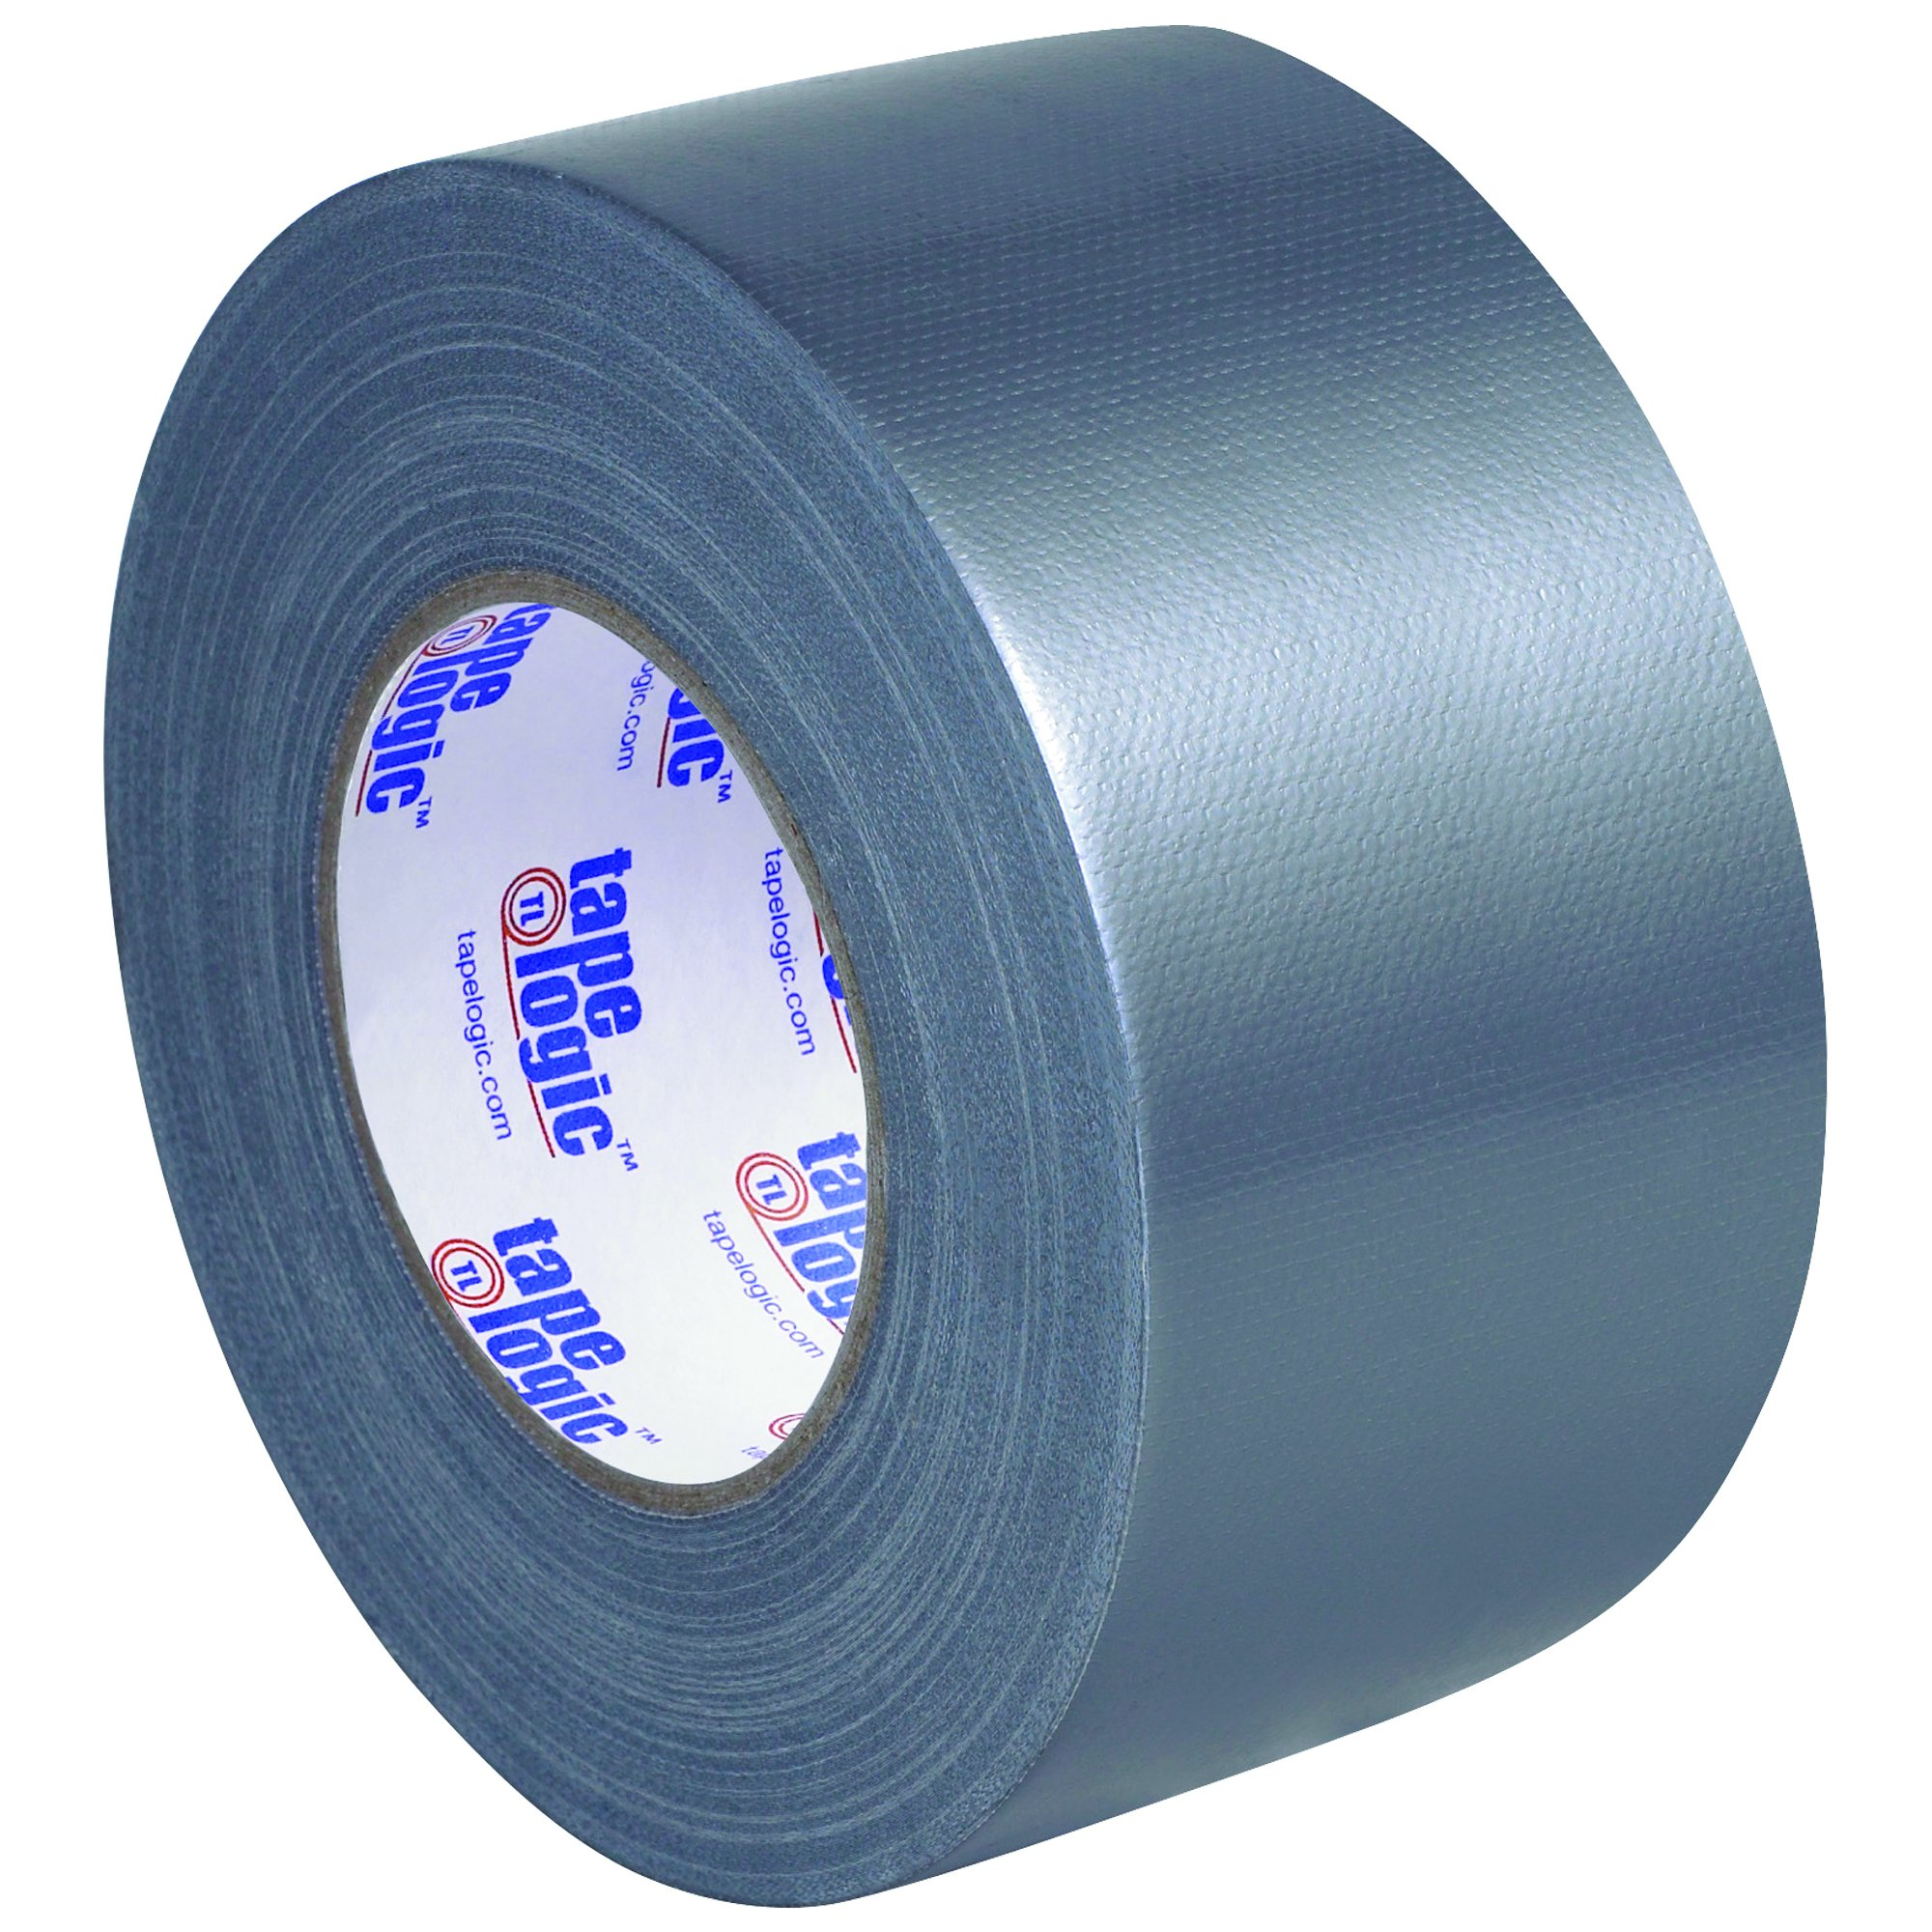 BOX USA BT98885S Silver Tape Logic Duct Tape, 9 mil, 3'' x 60 yd. (Pack of 16)